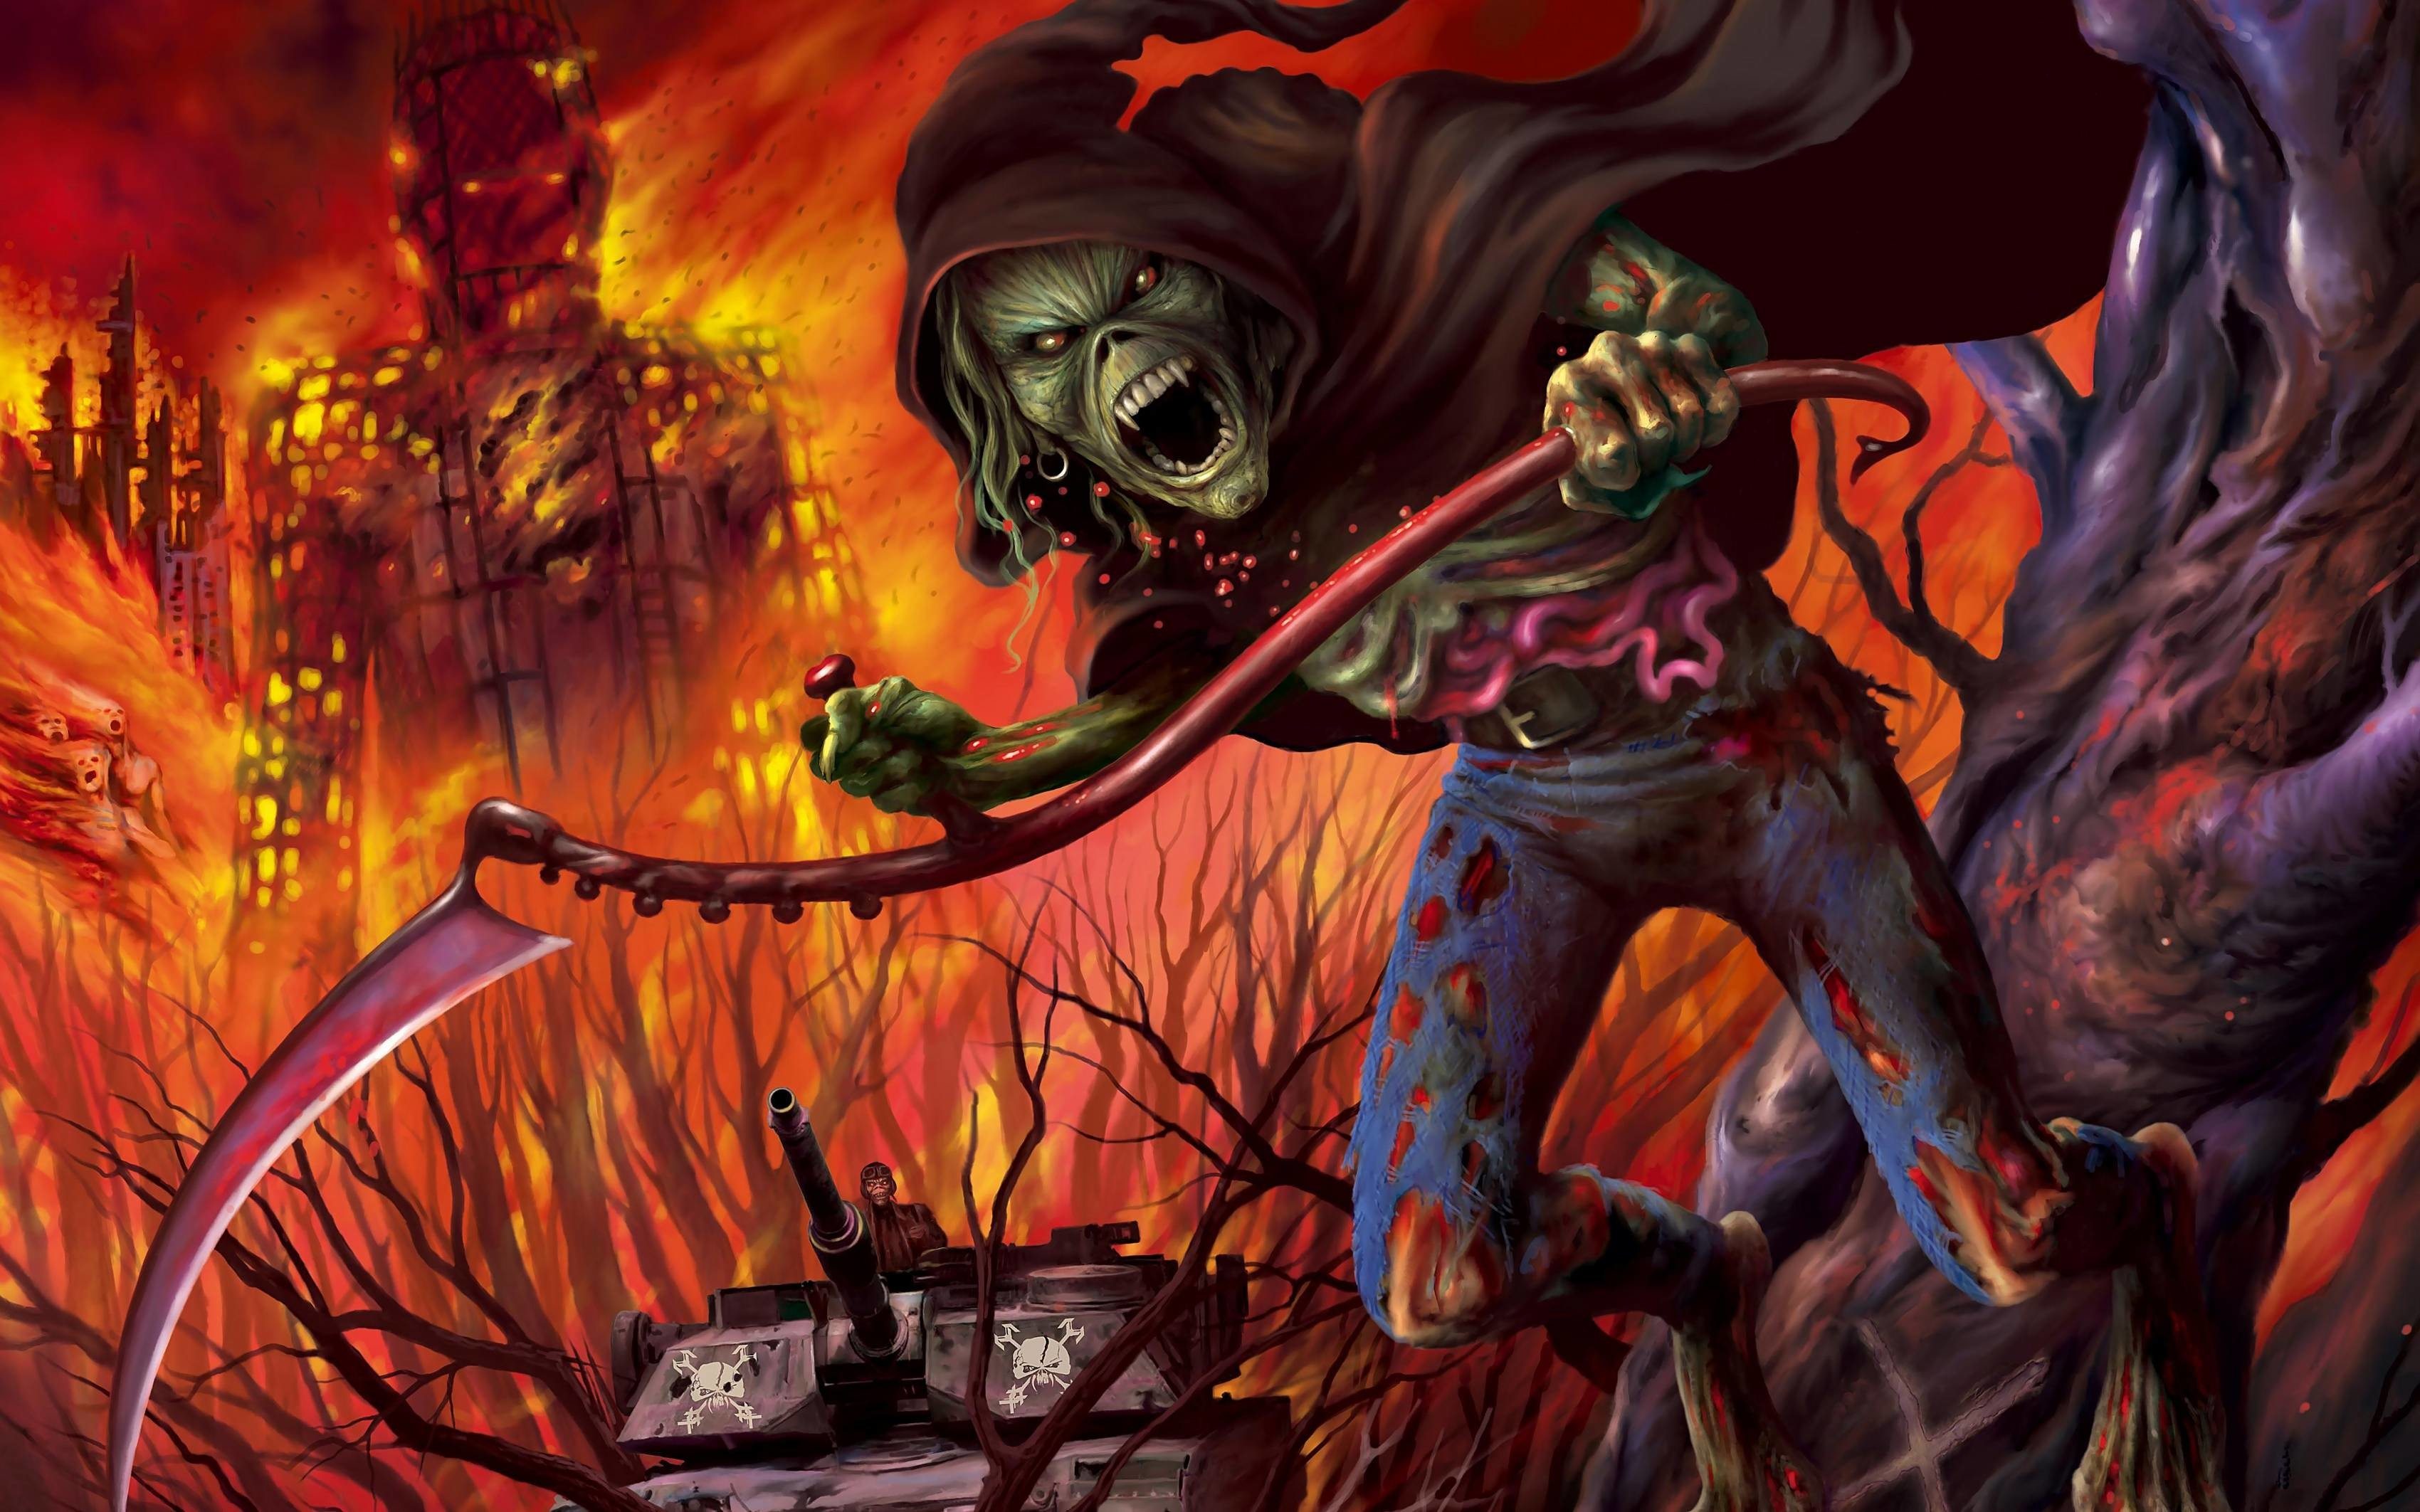 Iron Maiden Wallpaper (78+ images)